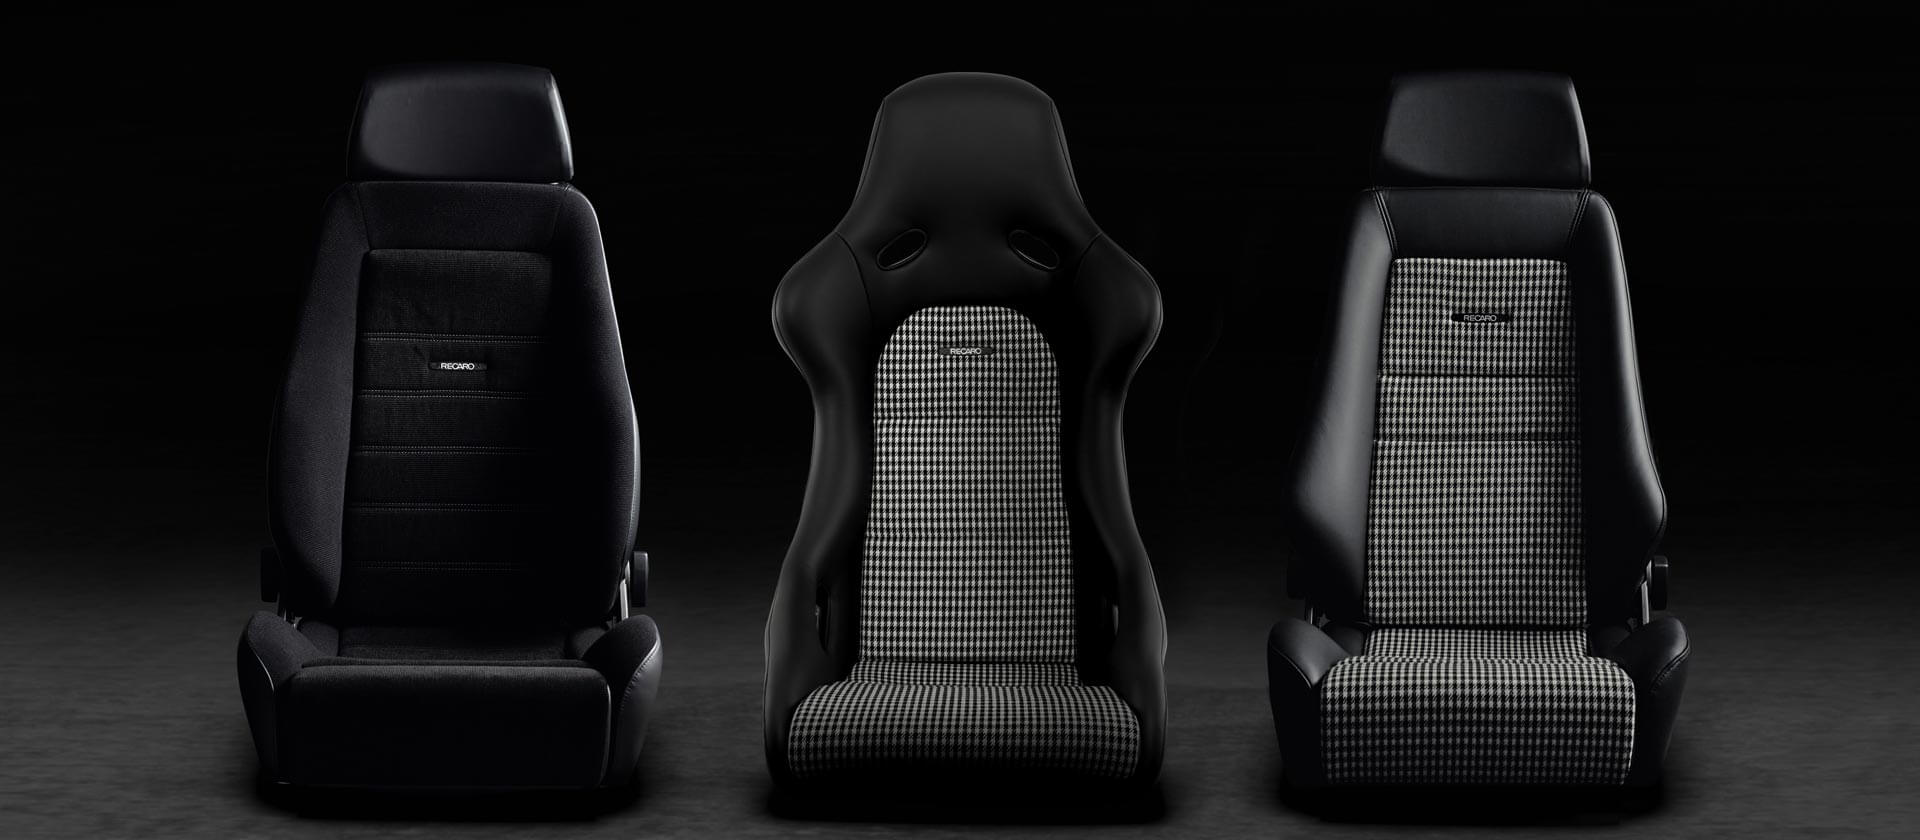 RECARO: Aftermarket and Motorsport seats